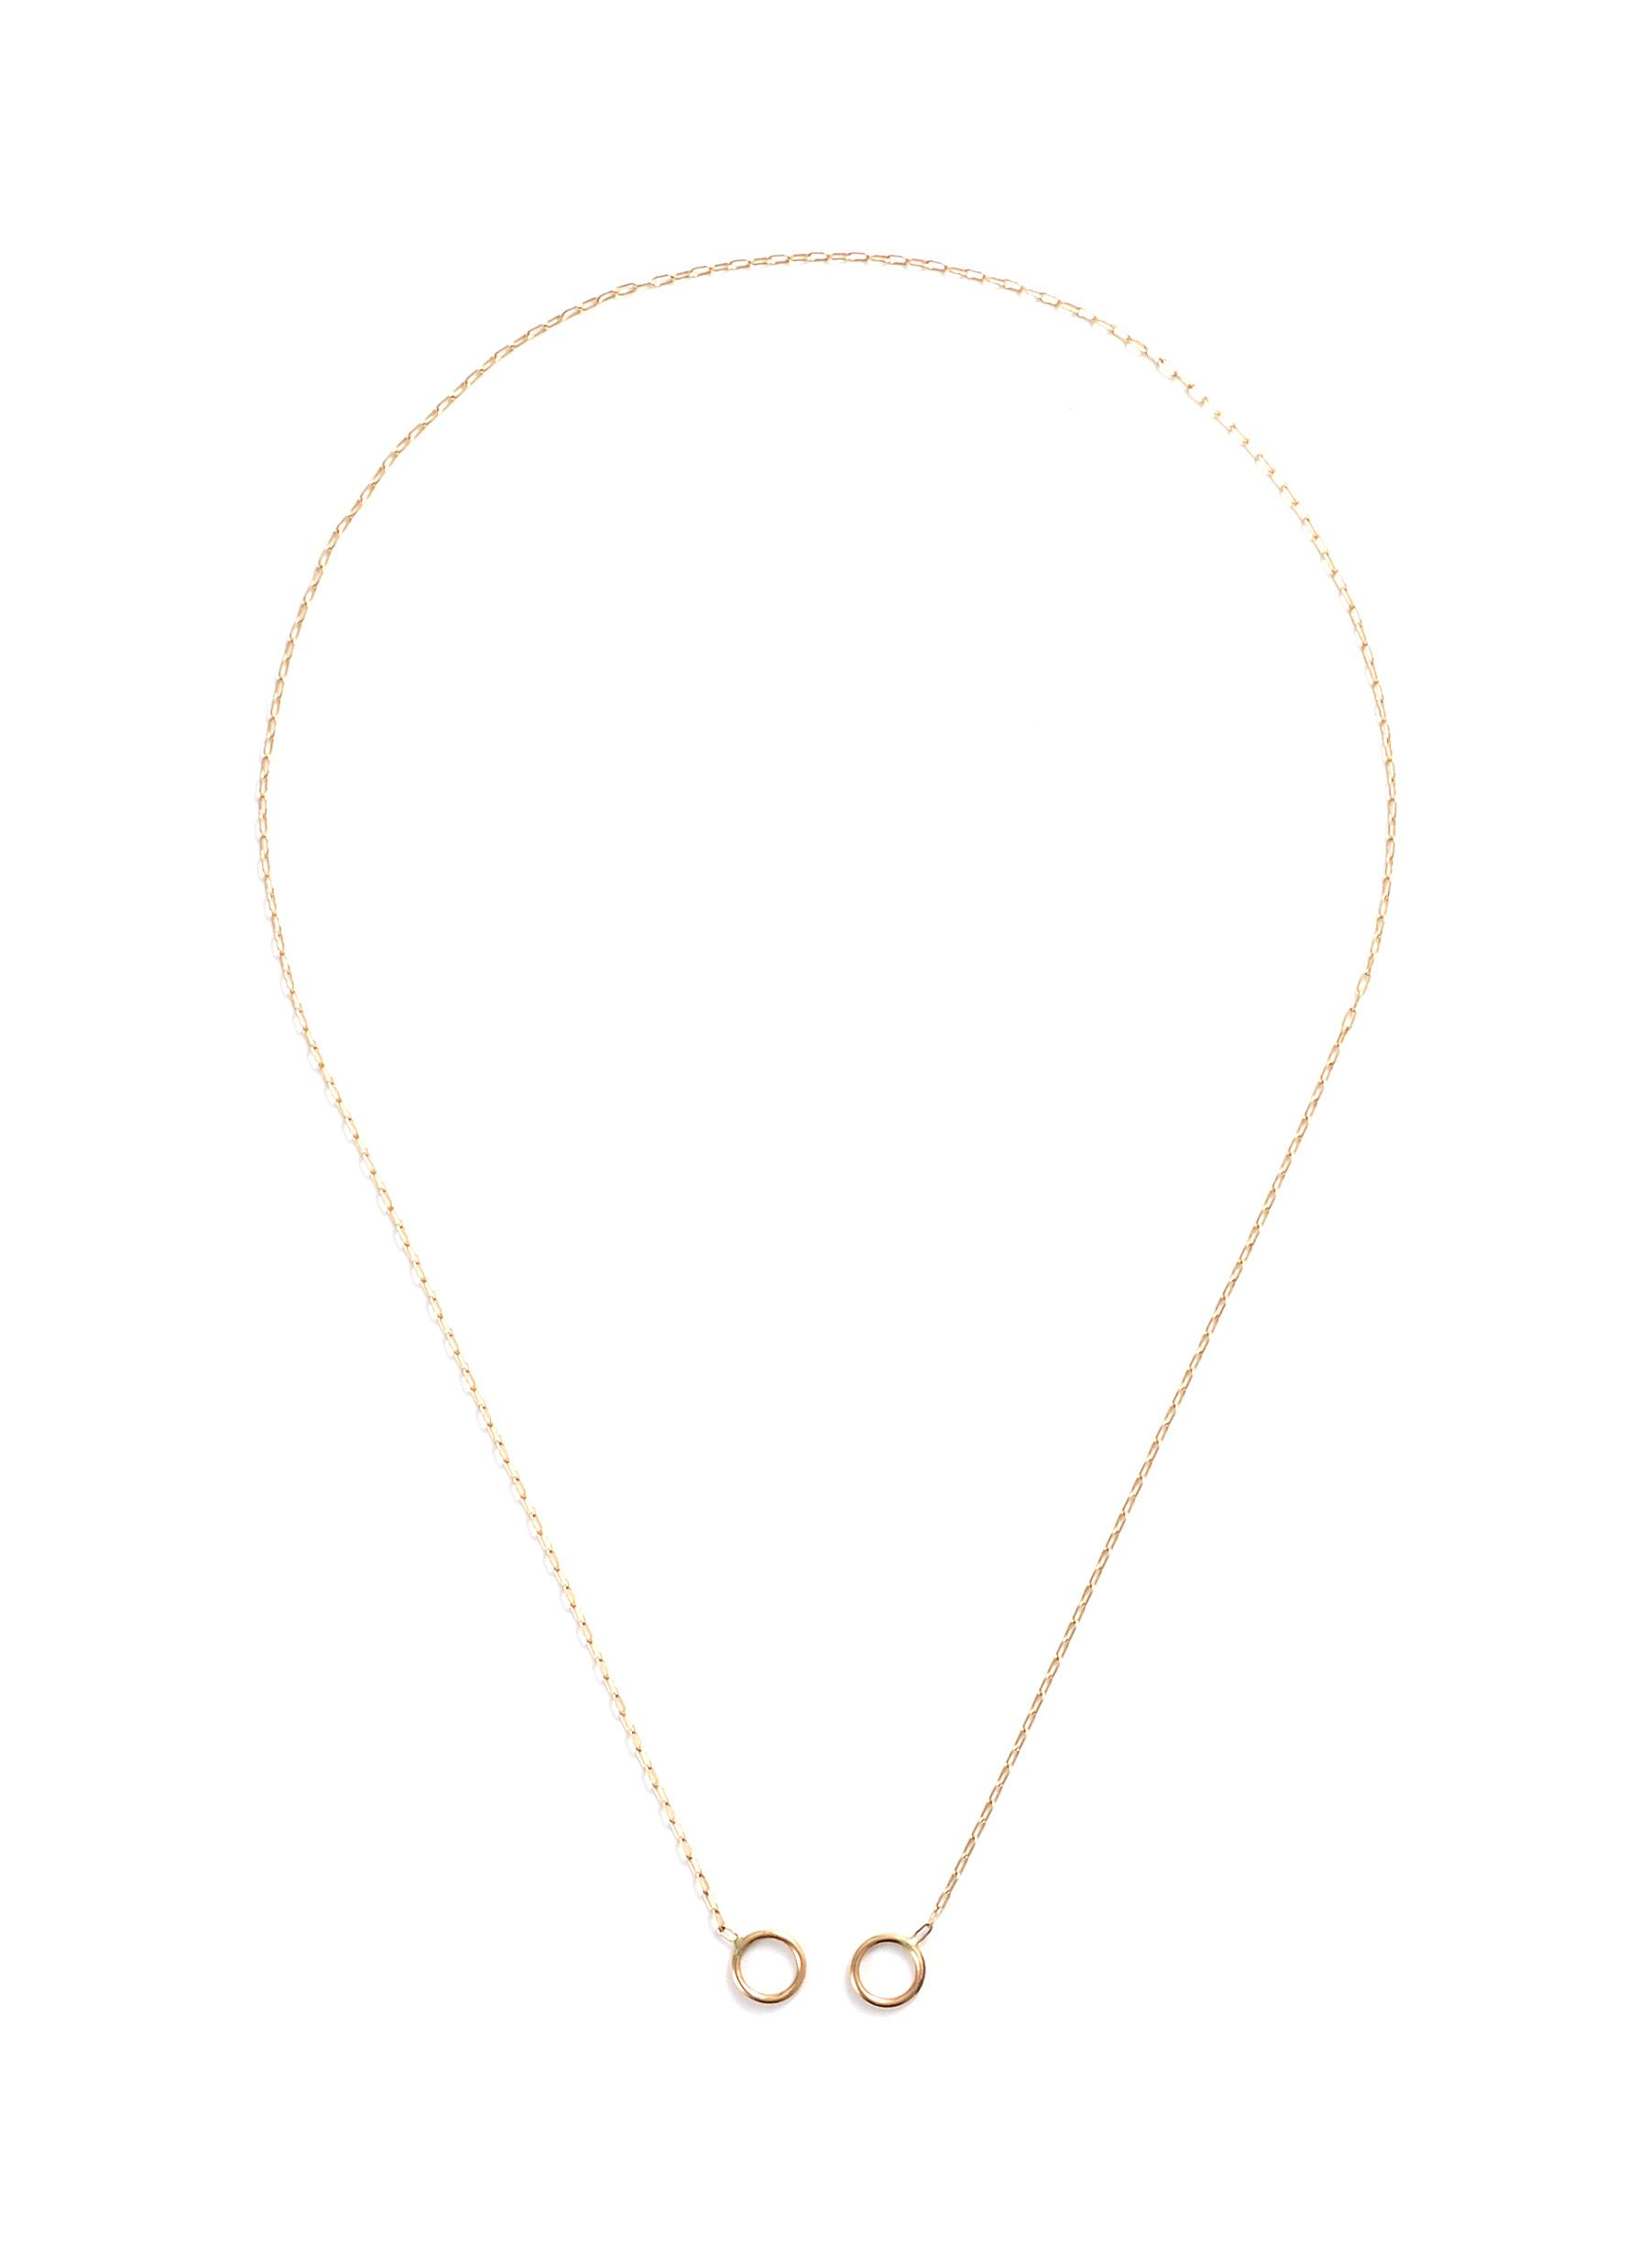 2 loop 14k yellow gold square link chain